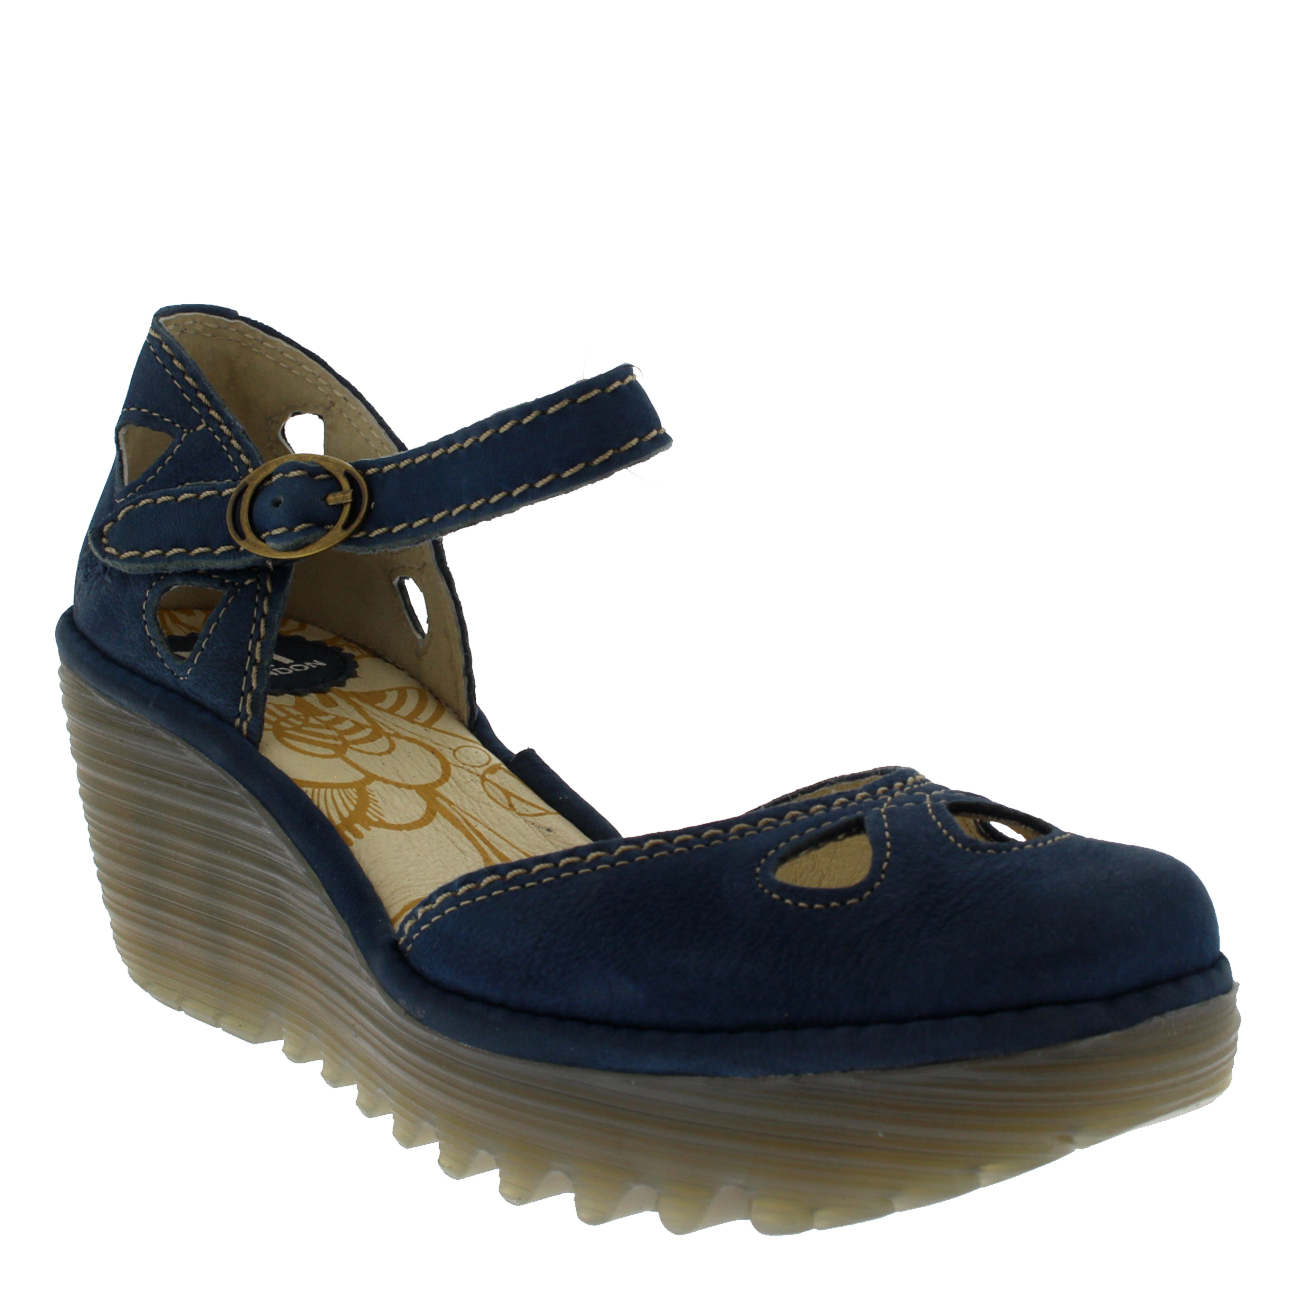 Ladies Fly Fly Fly London Yuna Strappy Closed Toe Strappy Mid Wedges Sandals All Sizes fd8d9f